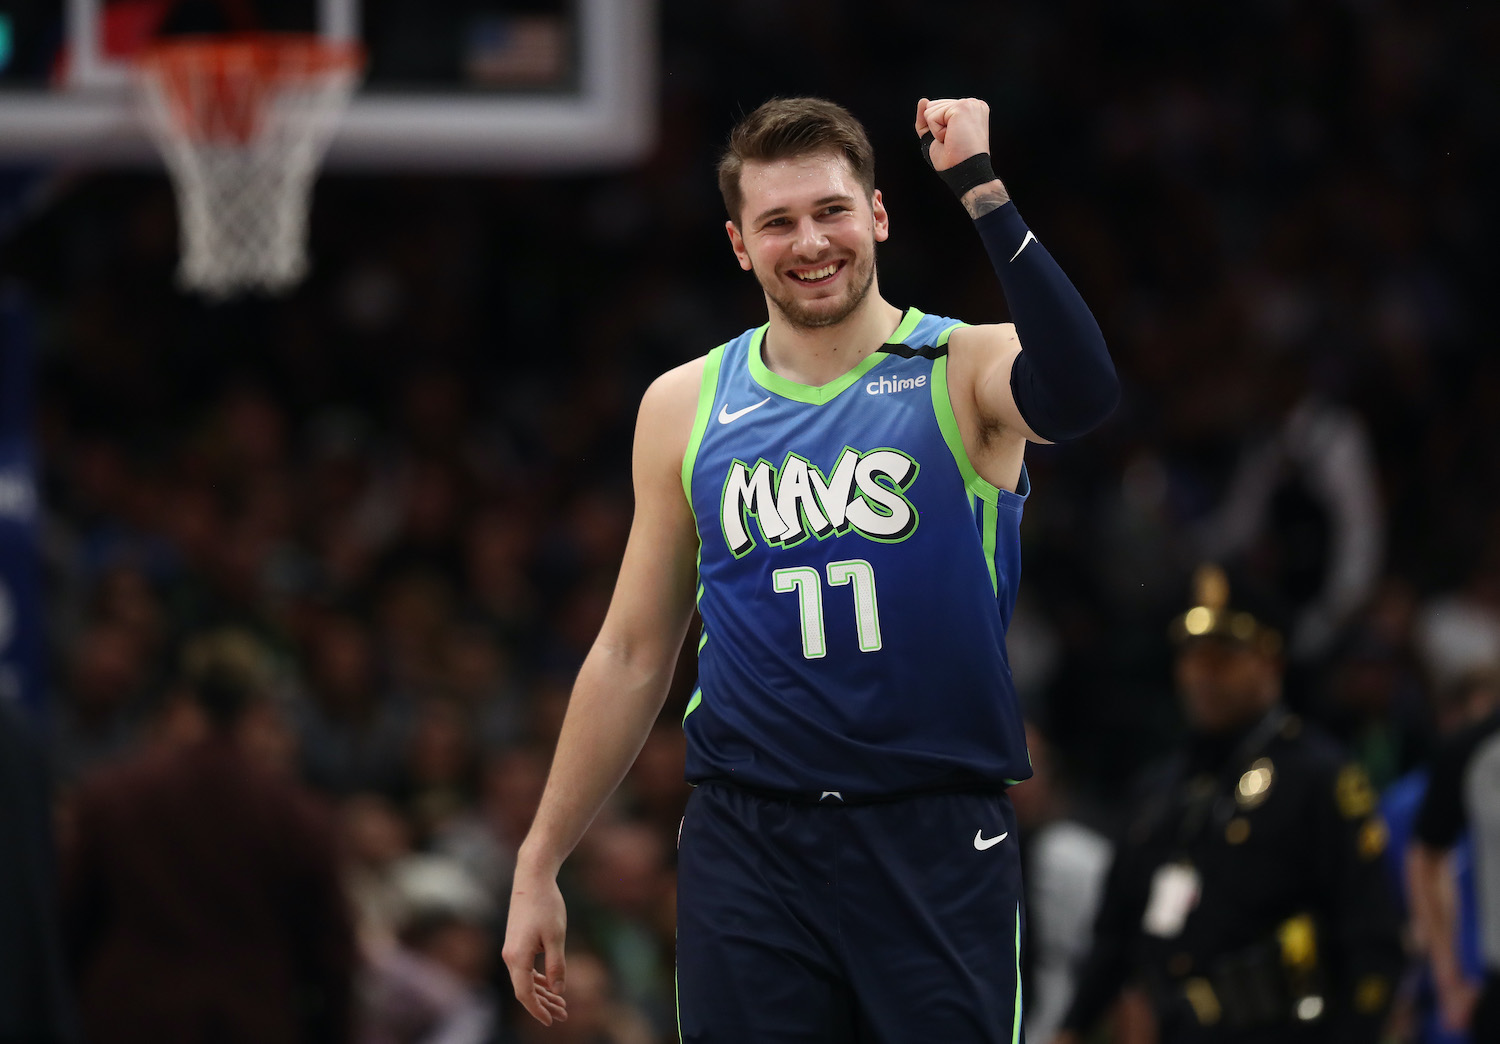 Luka Doncic is already showing he has what it takes to be the greatest Dallas Mavericks player ever in just his second year as a pro.